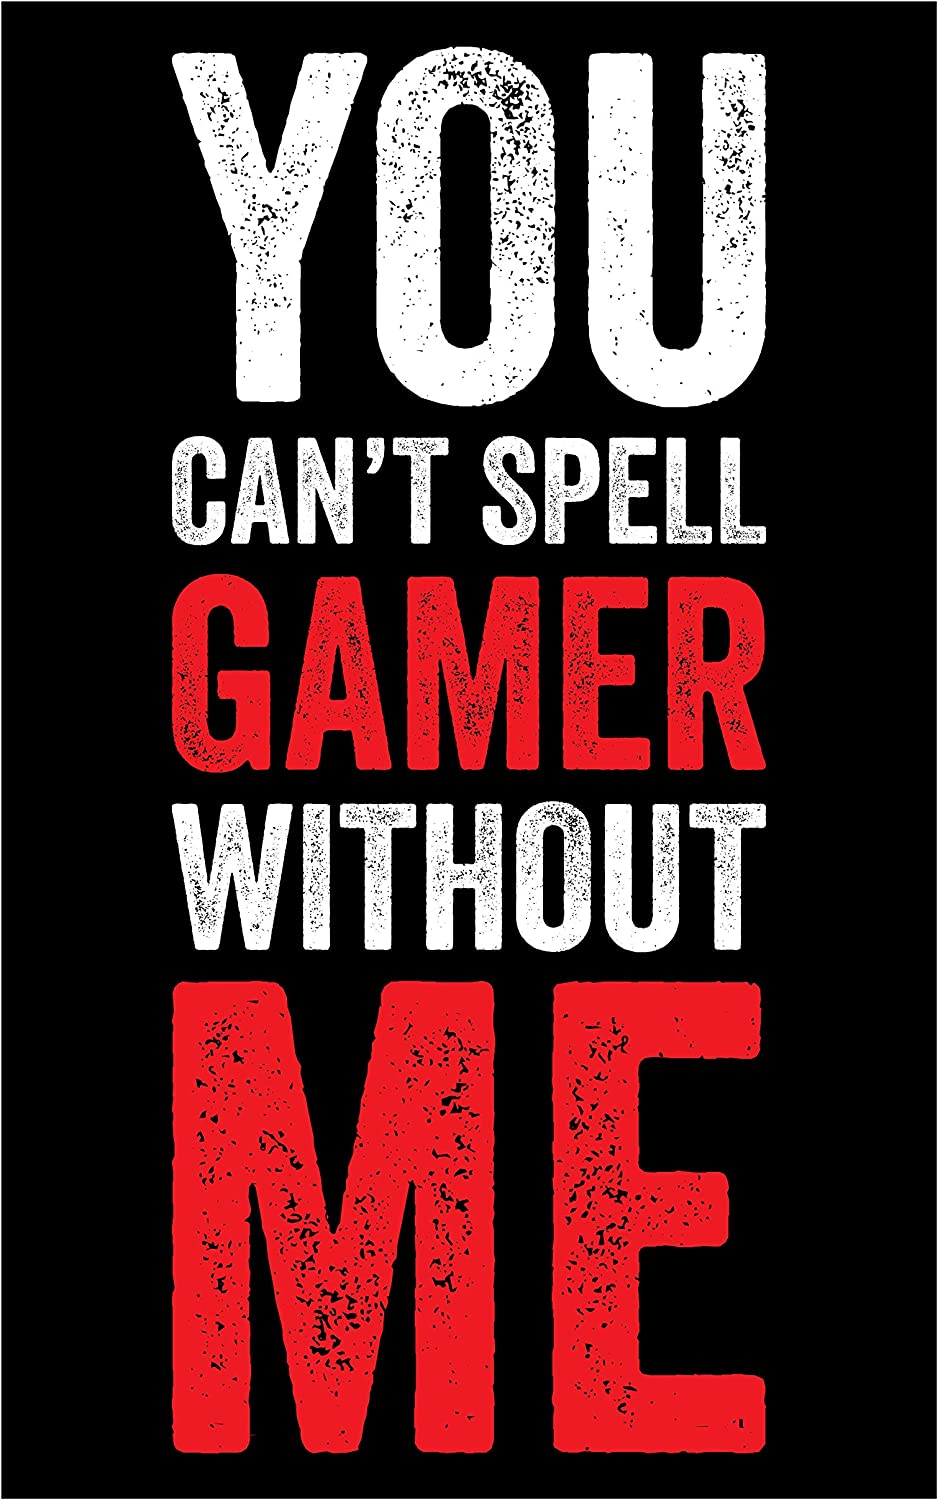 Spell Gamer Poster - Video Game Artwork - Wall Art Print - Boys Room - Gaming (11 x 17 Inches)